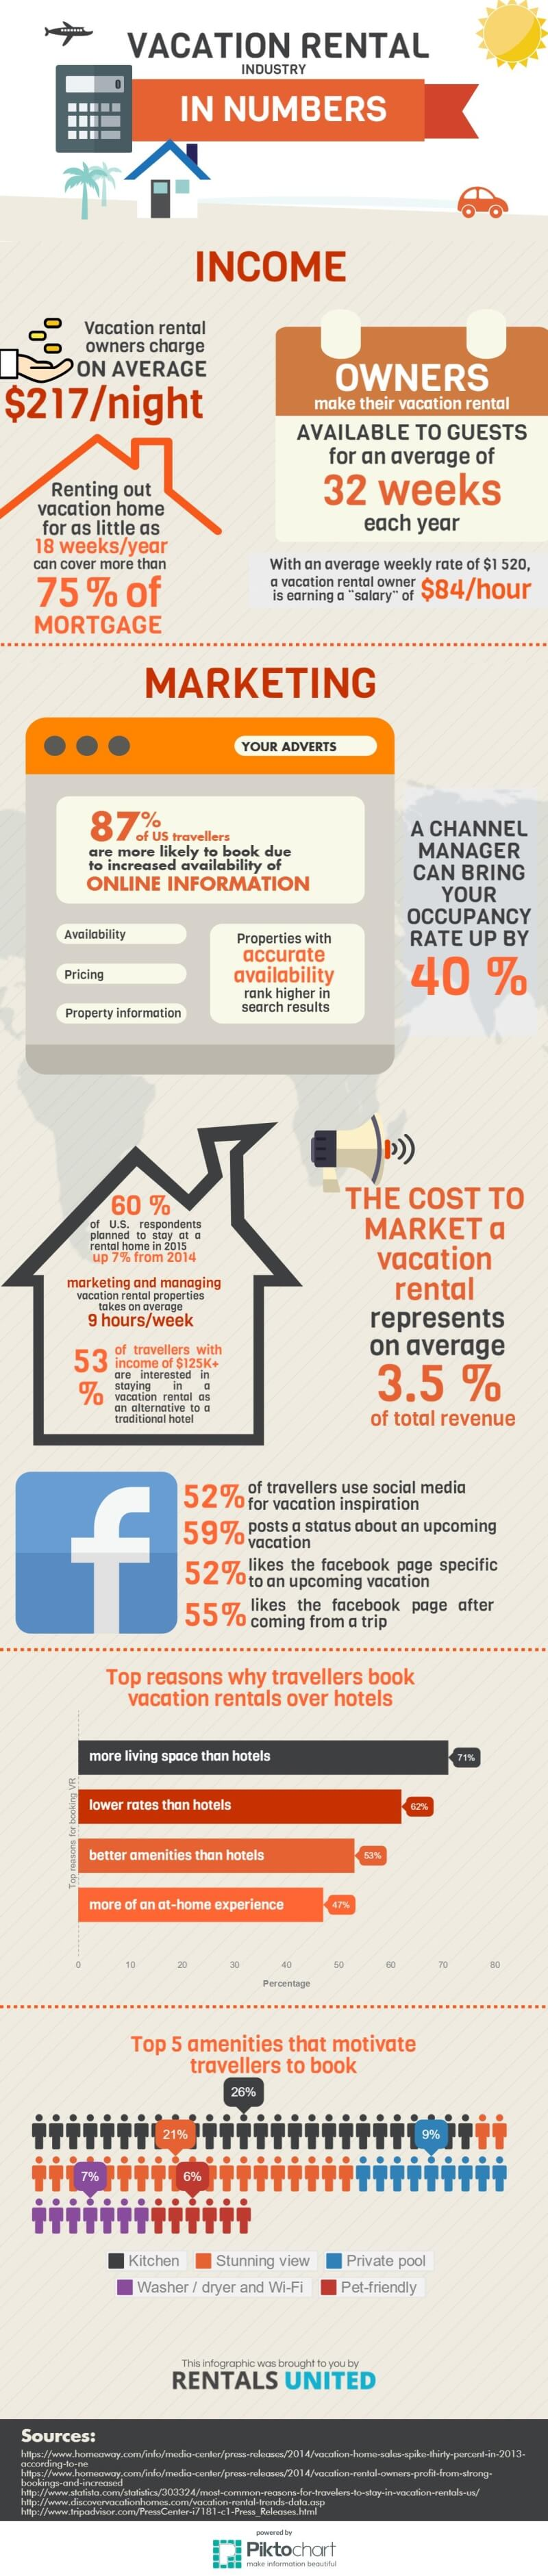 Vacation Rental Industry Stats Infographic